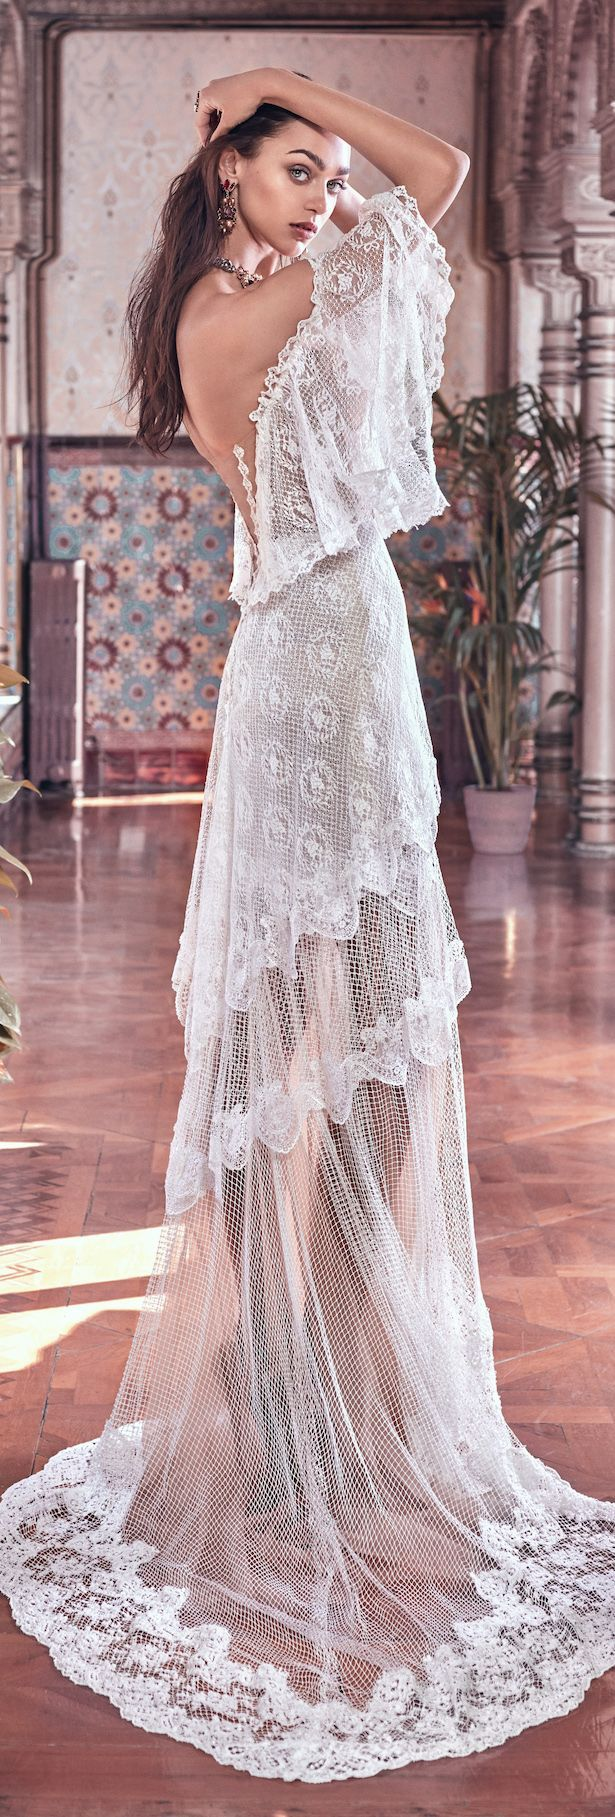 Elite wedding dresses  Galia Lahav Wedding Dress Collection  Victorian Affinity